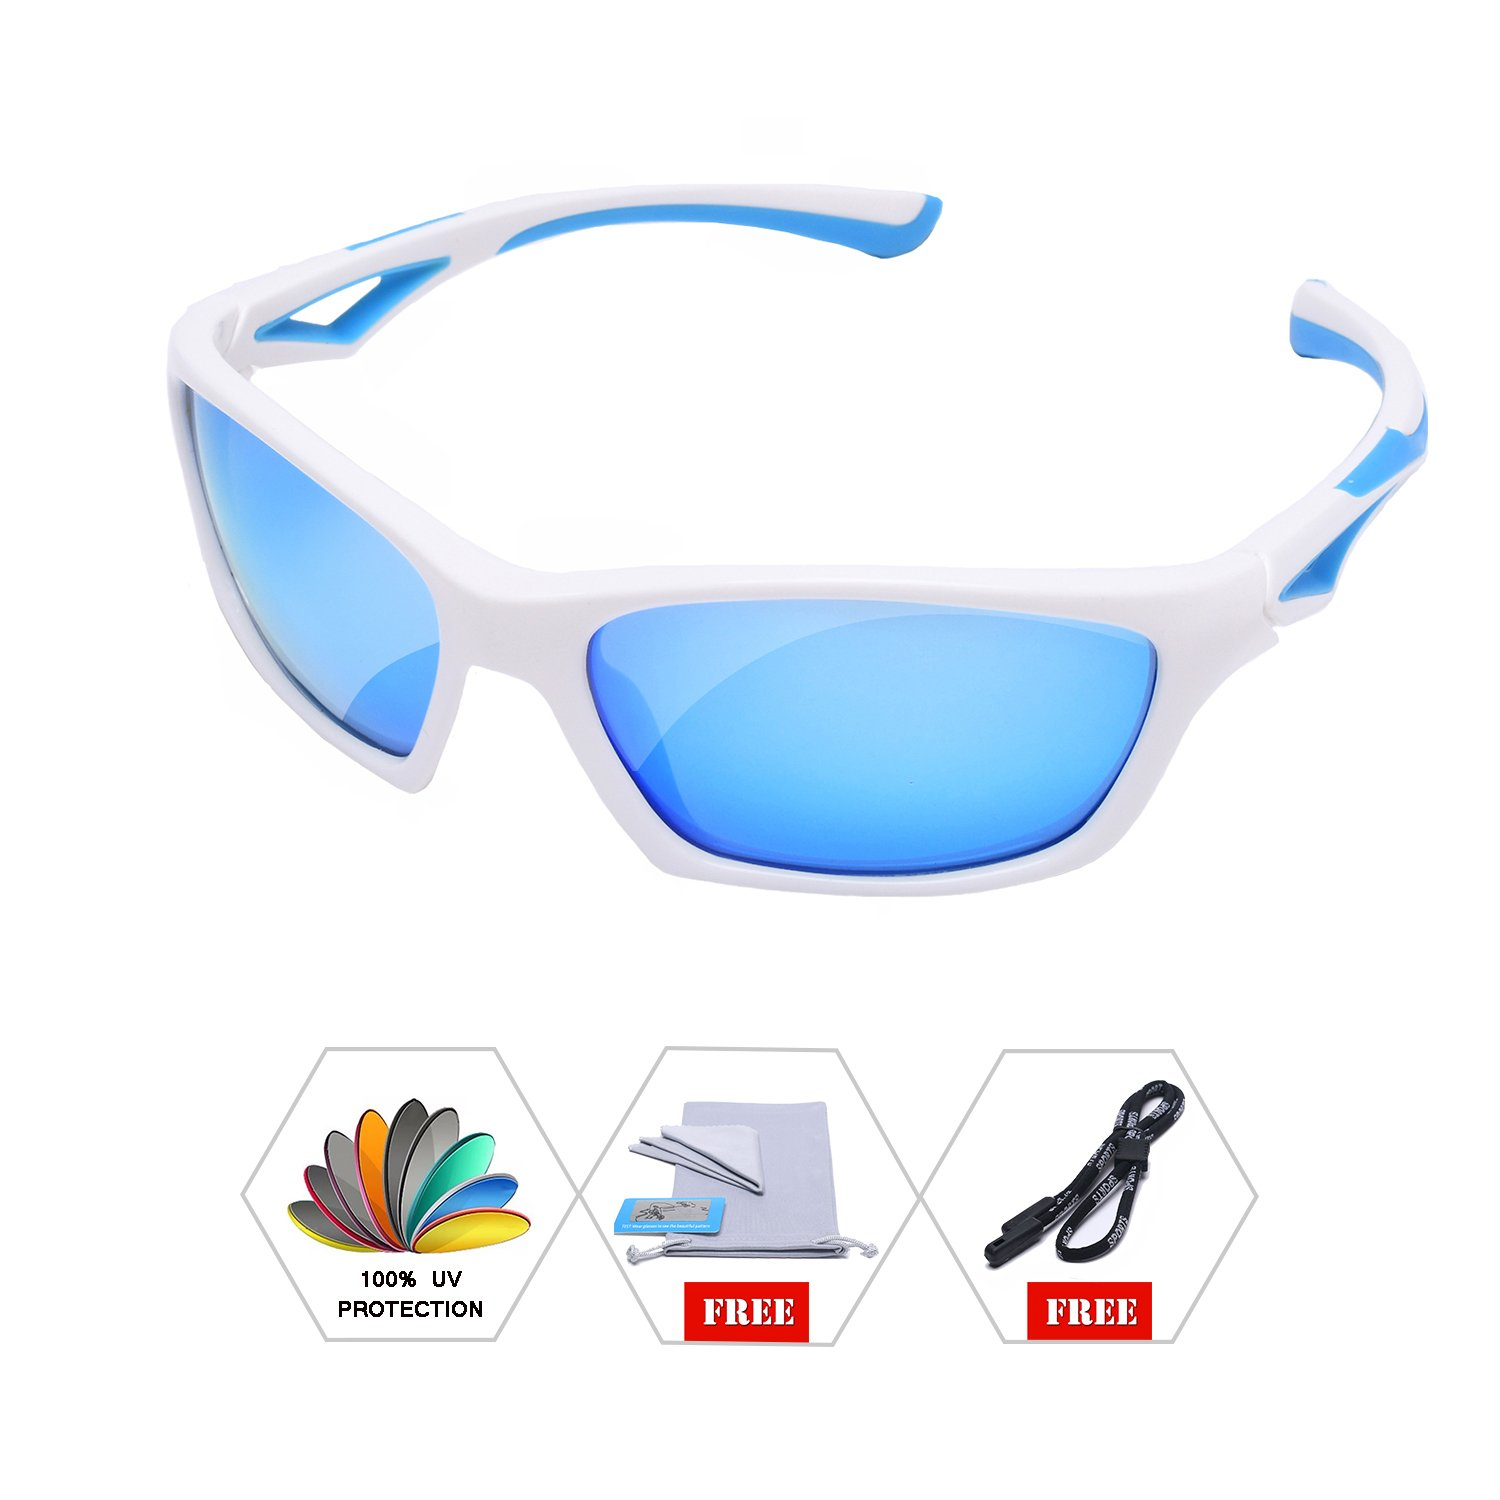 AODUOKE Sports Polarized Sunglasses For Kids Children Boys And Girls Shades With Strap TR90 Unbreakable Frame Aoduoke969